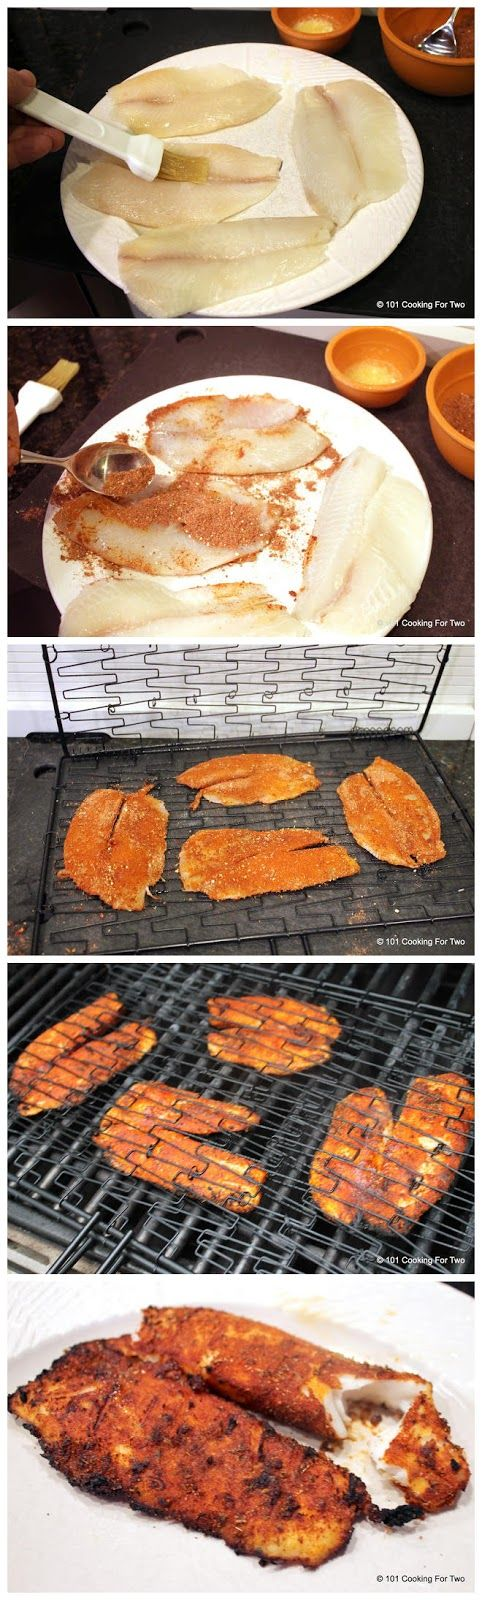 Grilled Blackened Tilapia - nice and easy blackened recipe. The brown sugar adds a hint of sweetness.